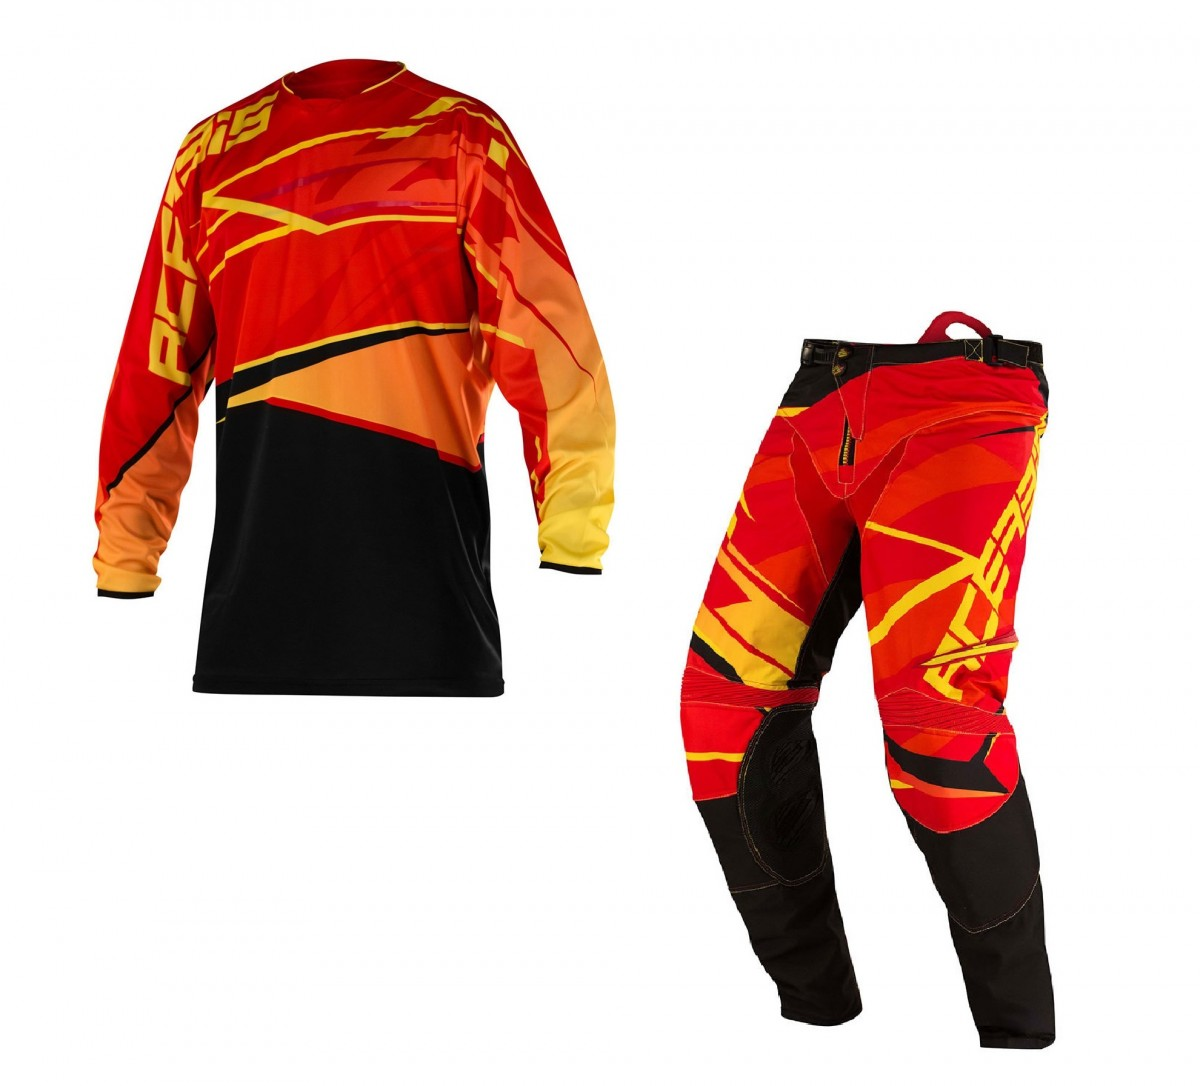 RED//YELLOW ACERBIS COMPLETO CROSS X-GEAR 2016 MAGLIA+PANT